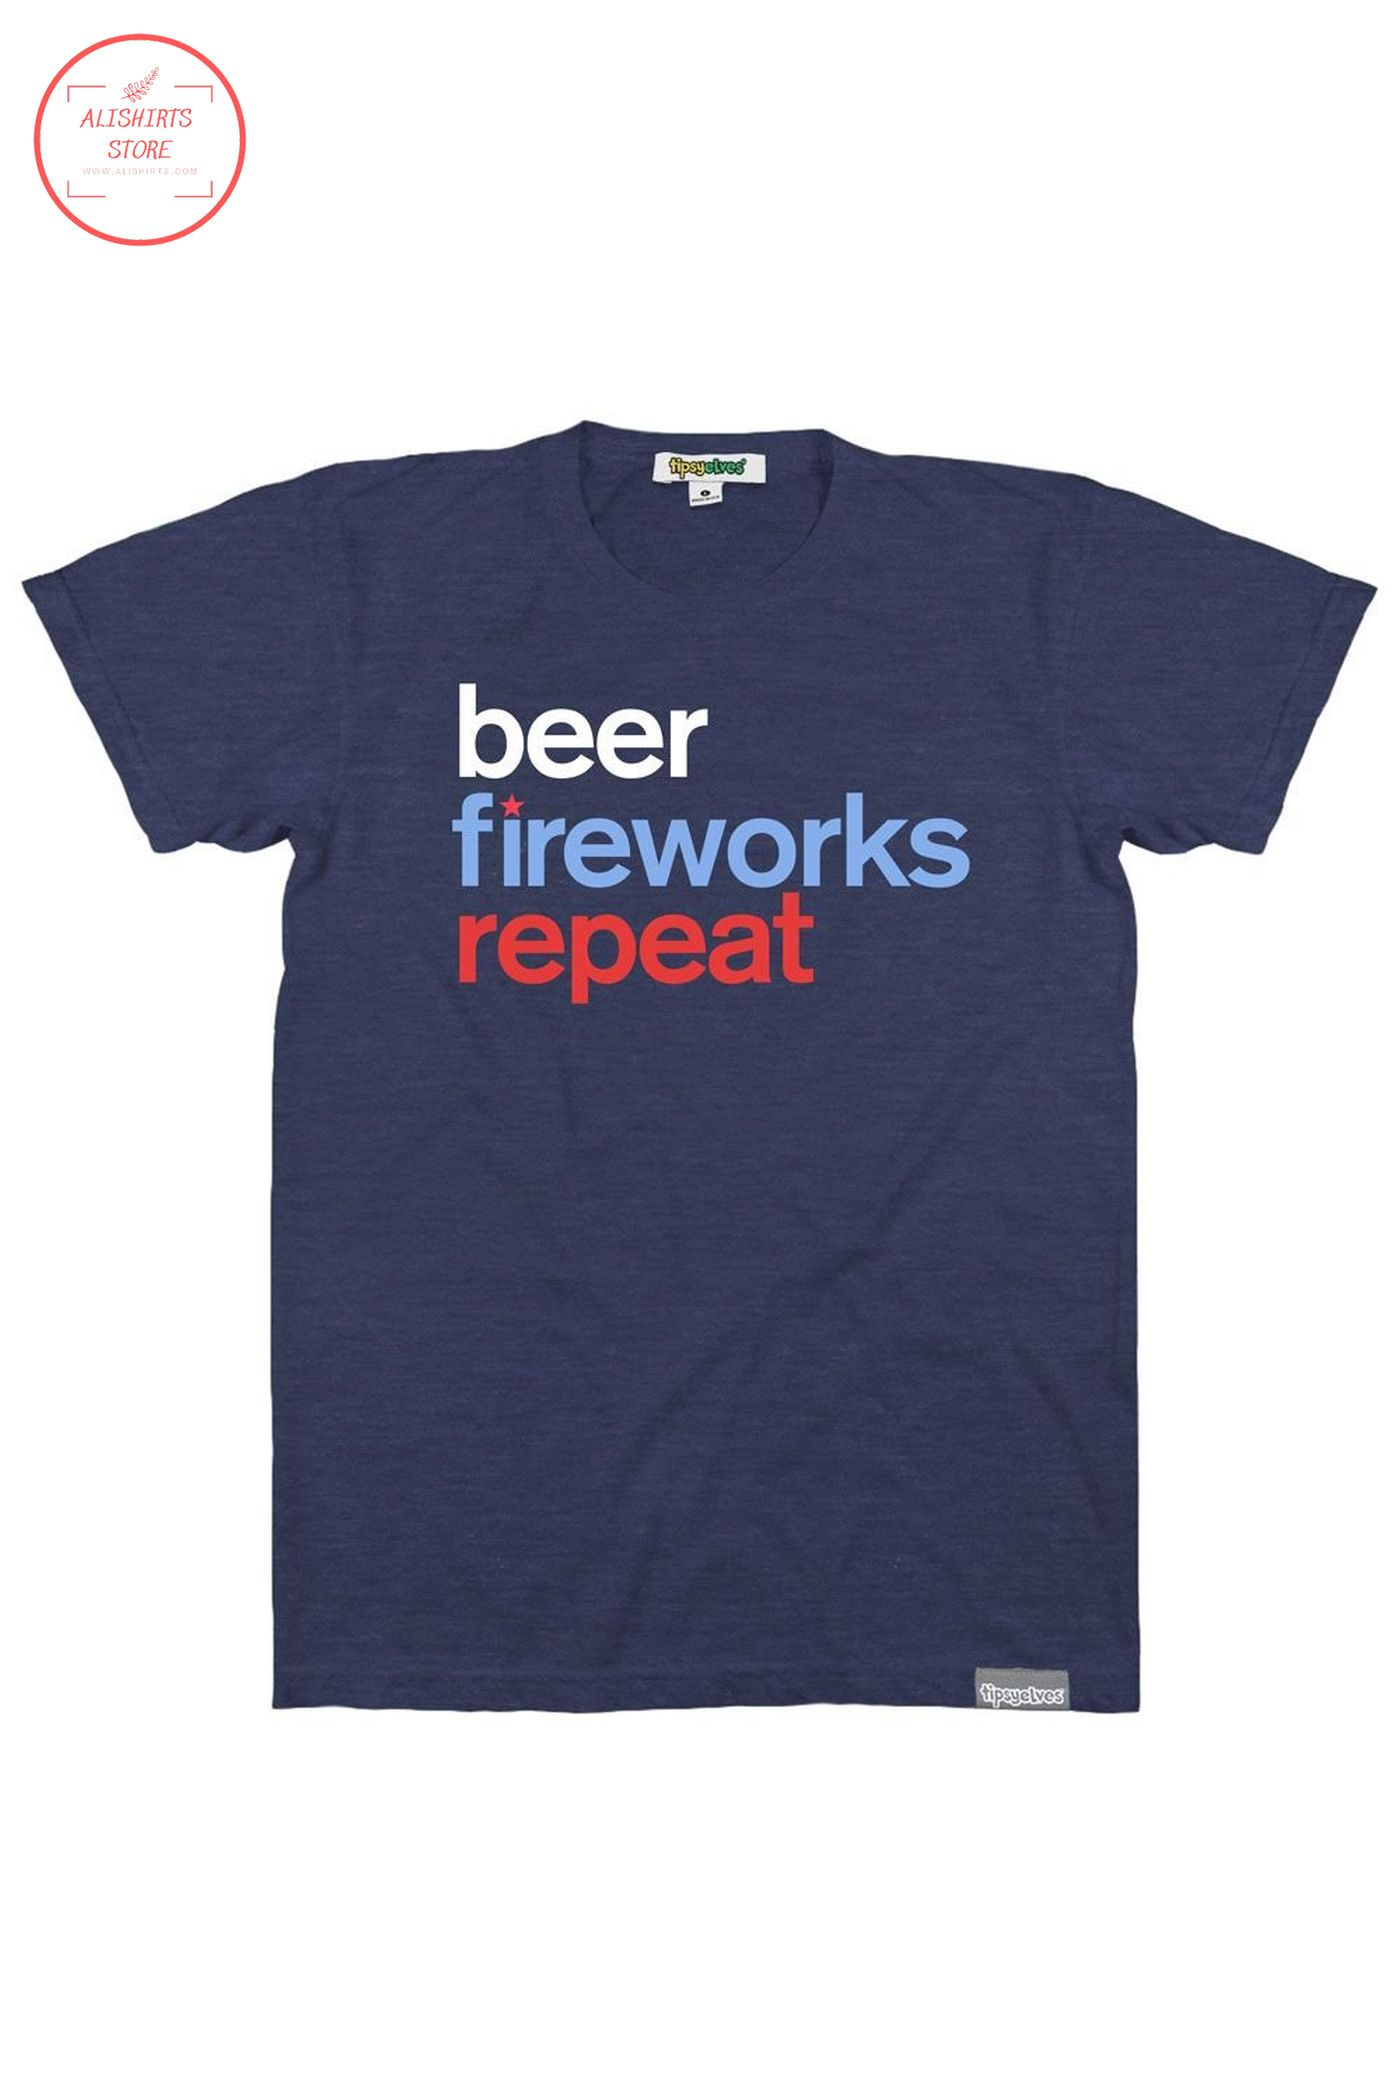 Funny beer shirt 4th of july edition